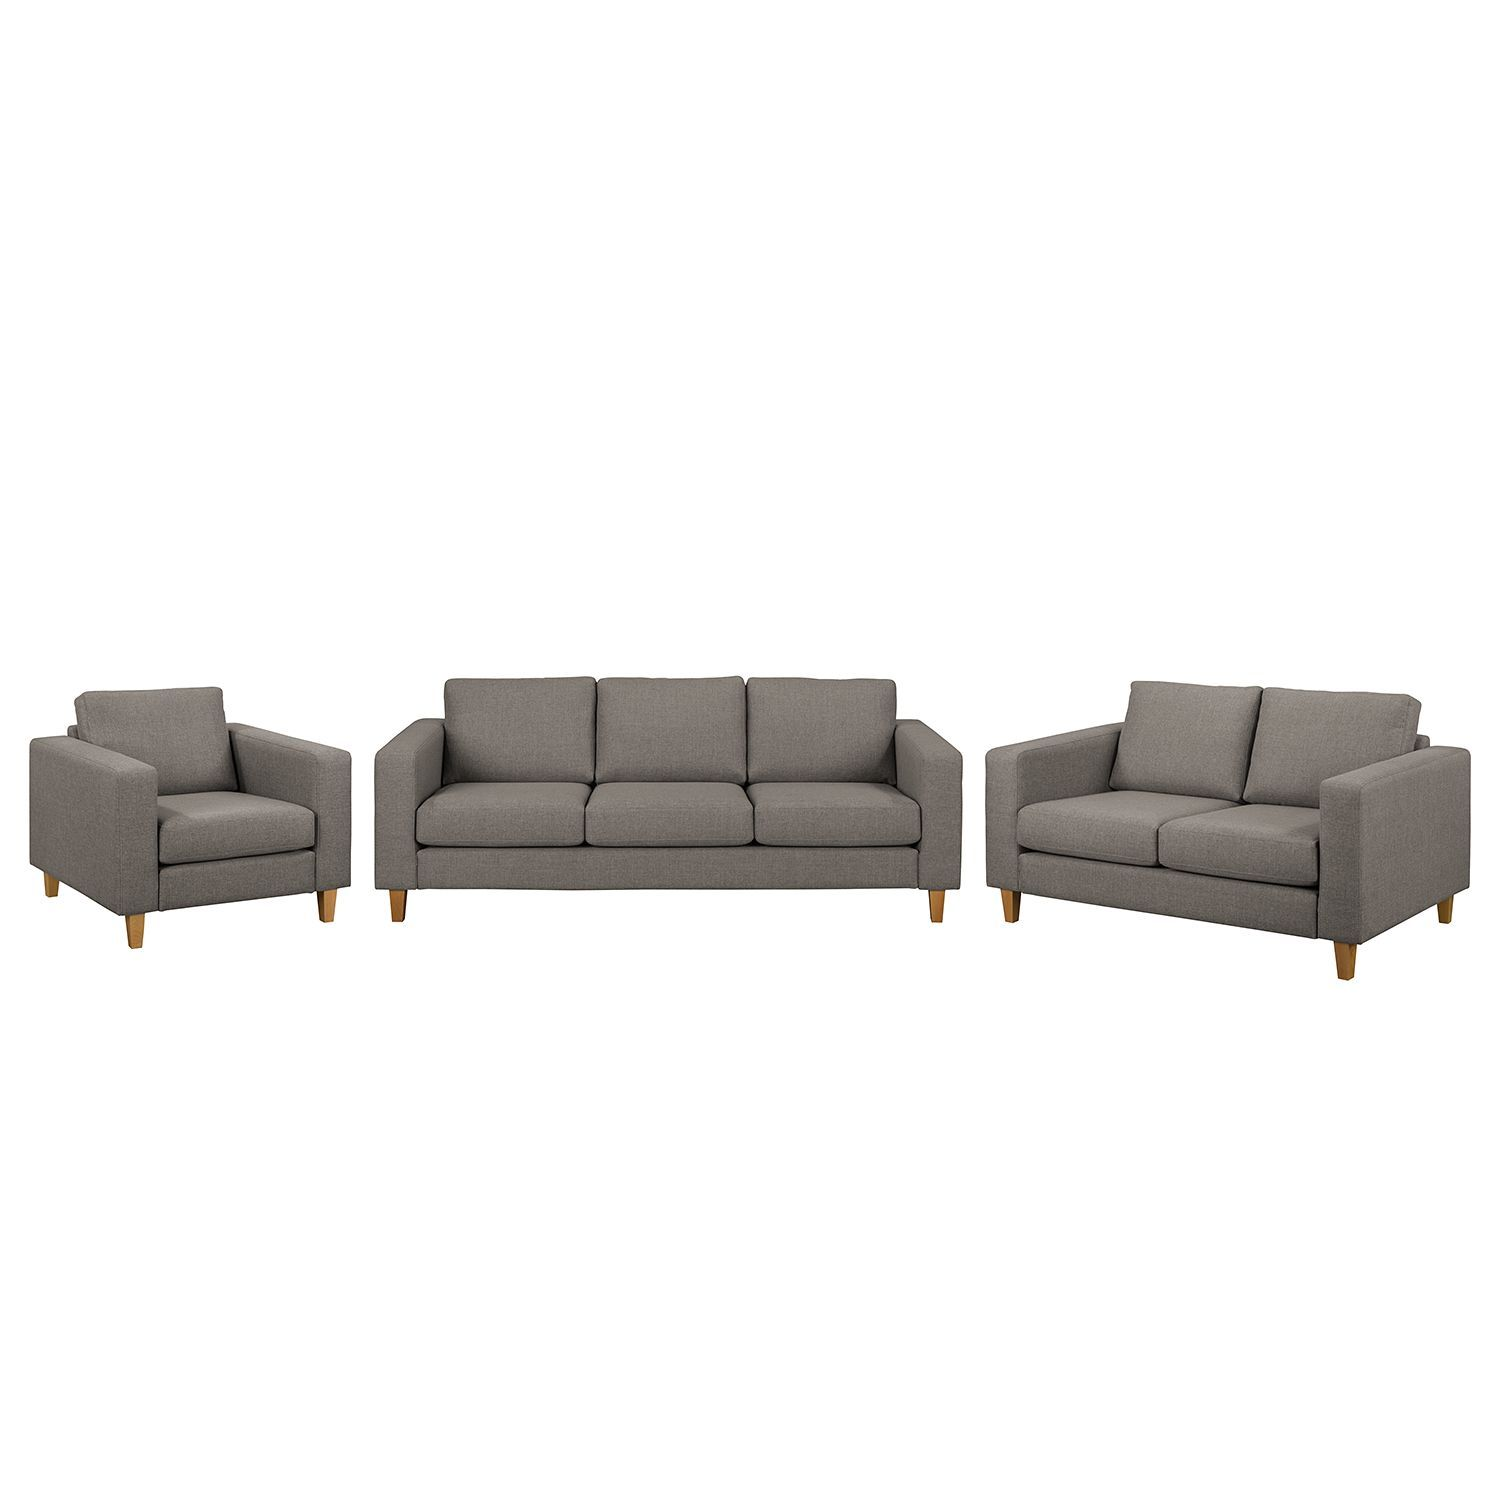 Ecksofa Clintwood Polstergarnitur Maison 3 2 1 Products Big Sofa Kaufen Sofa